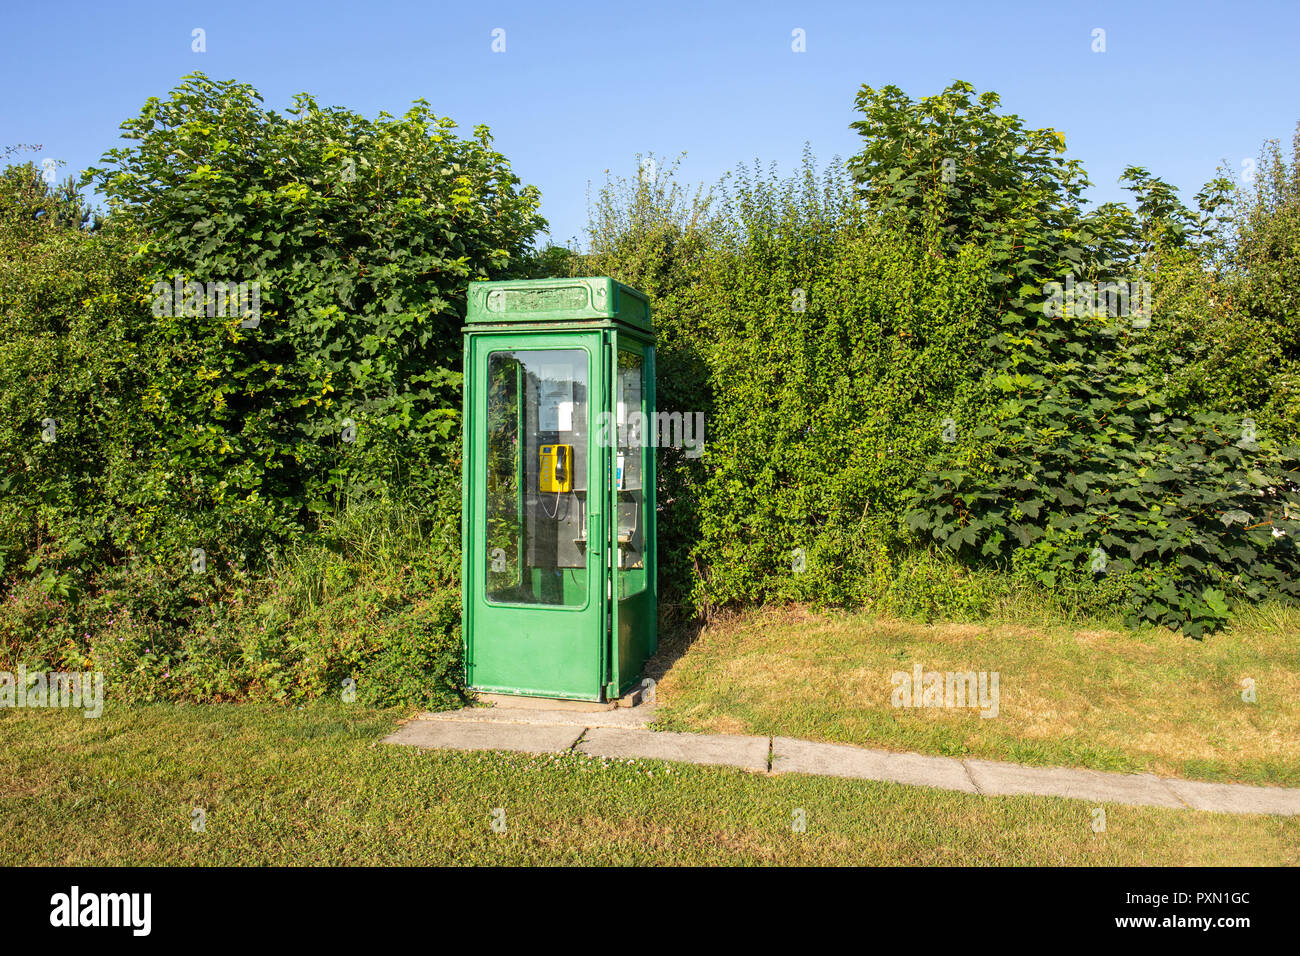 Green painted telephone box on a campsite in Wales UK - Stock Image